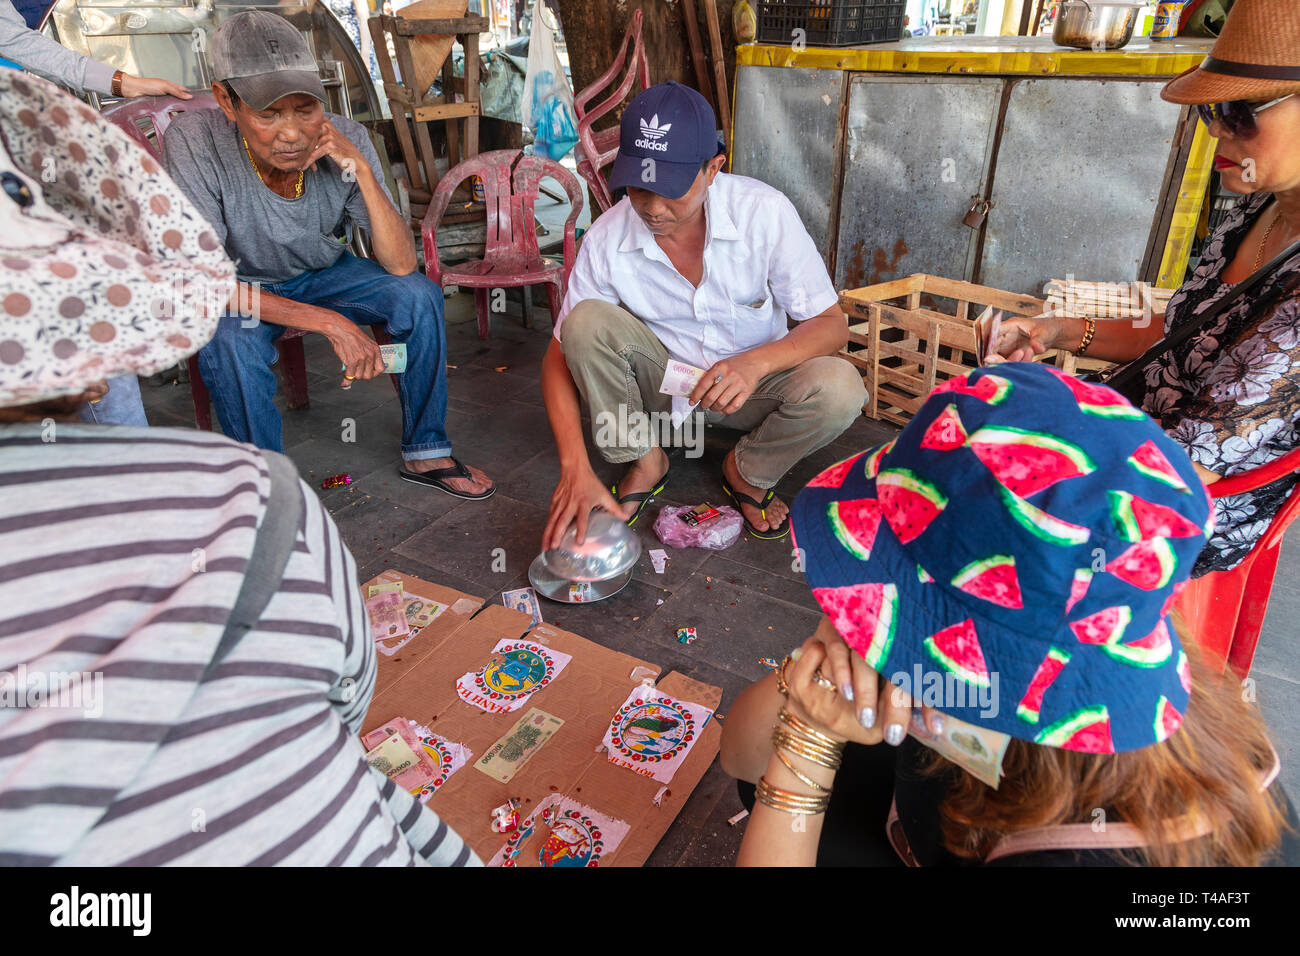 Street gambling den playing dice based betting and a homemade board, back streets, Old quarter, Hoi An, Quang NAm Provence, Vietnam, Asia - Stock Image